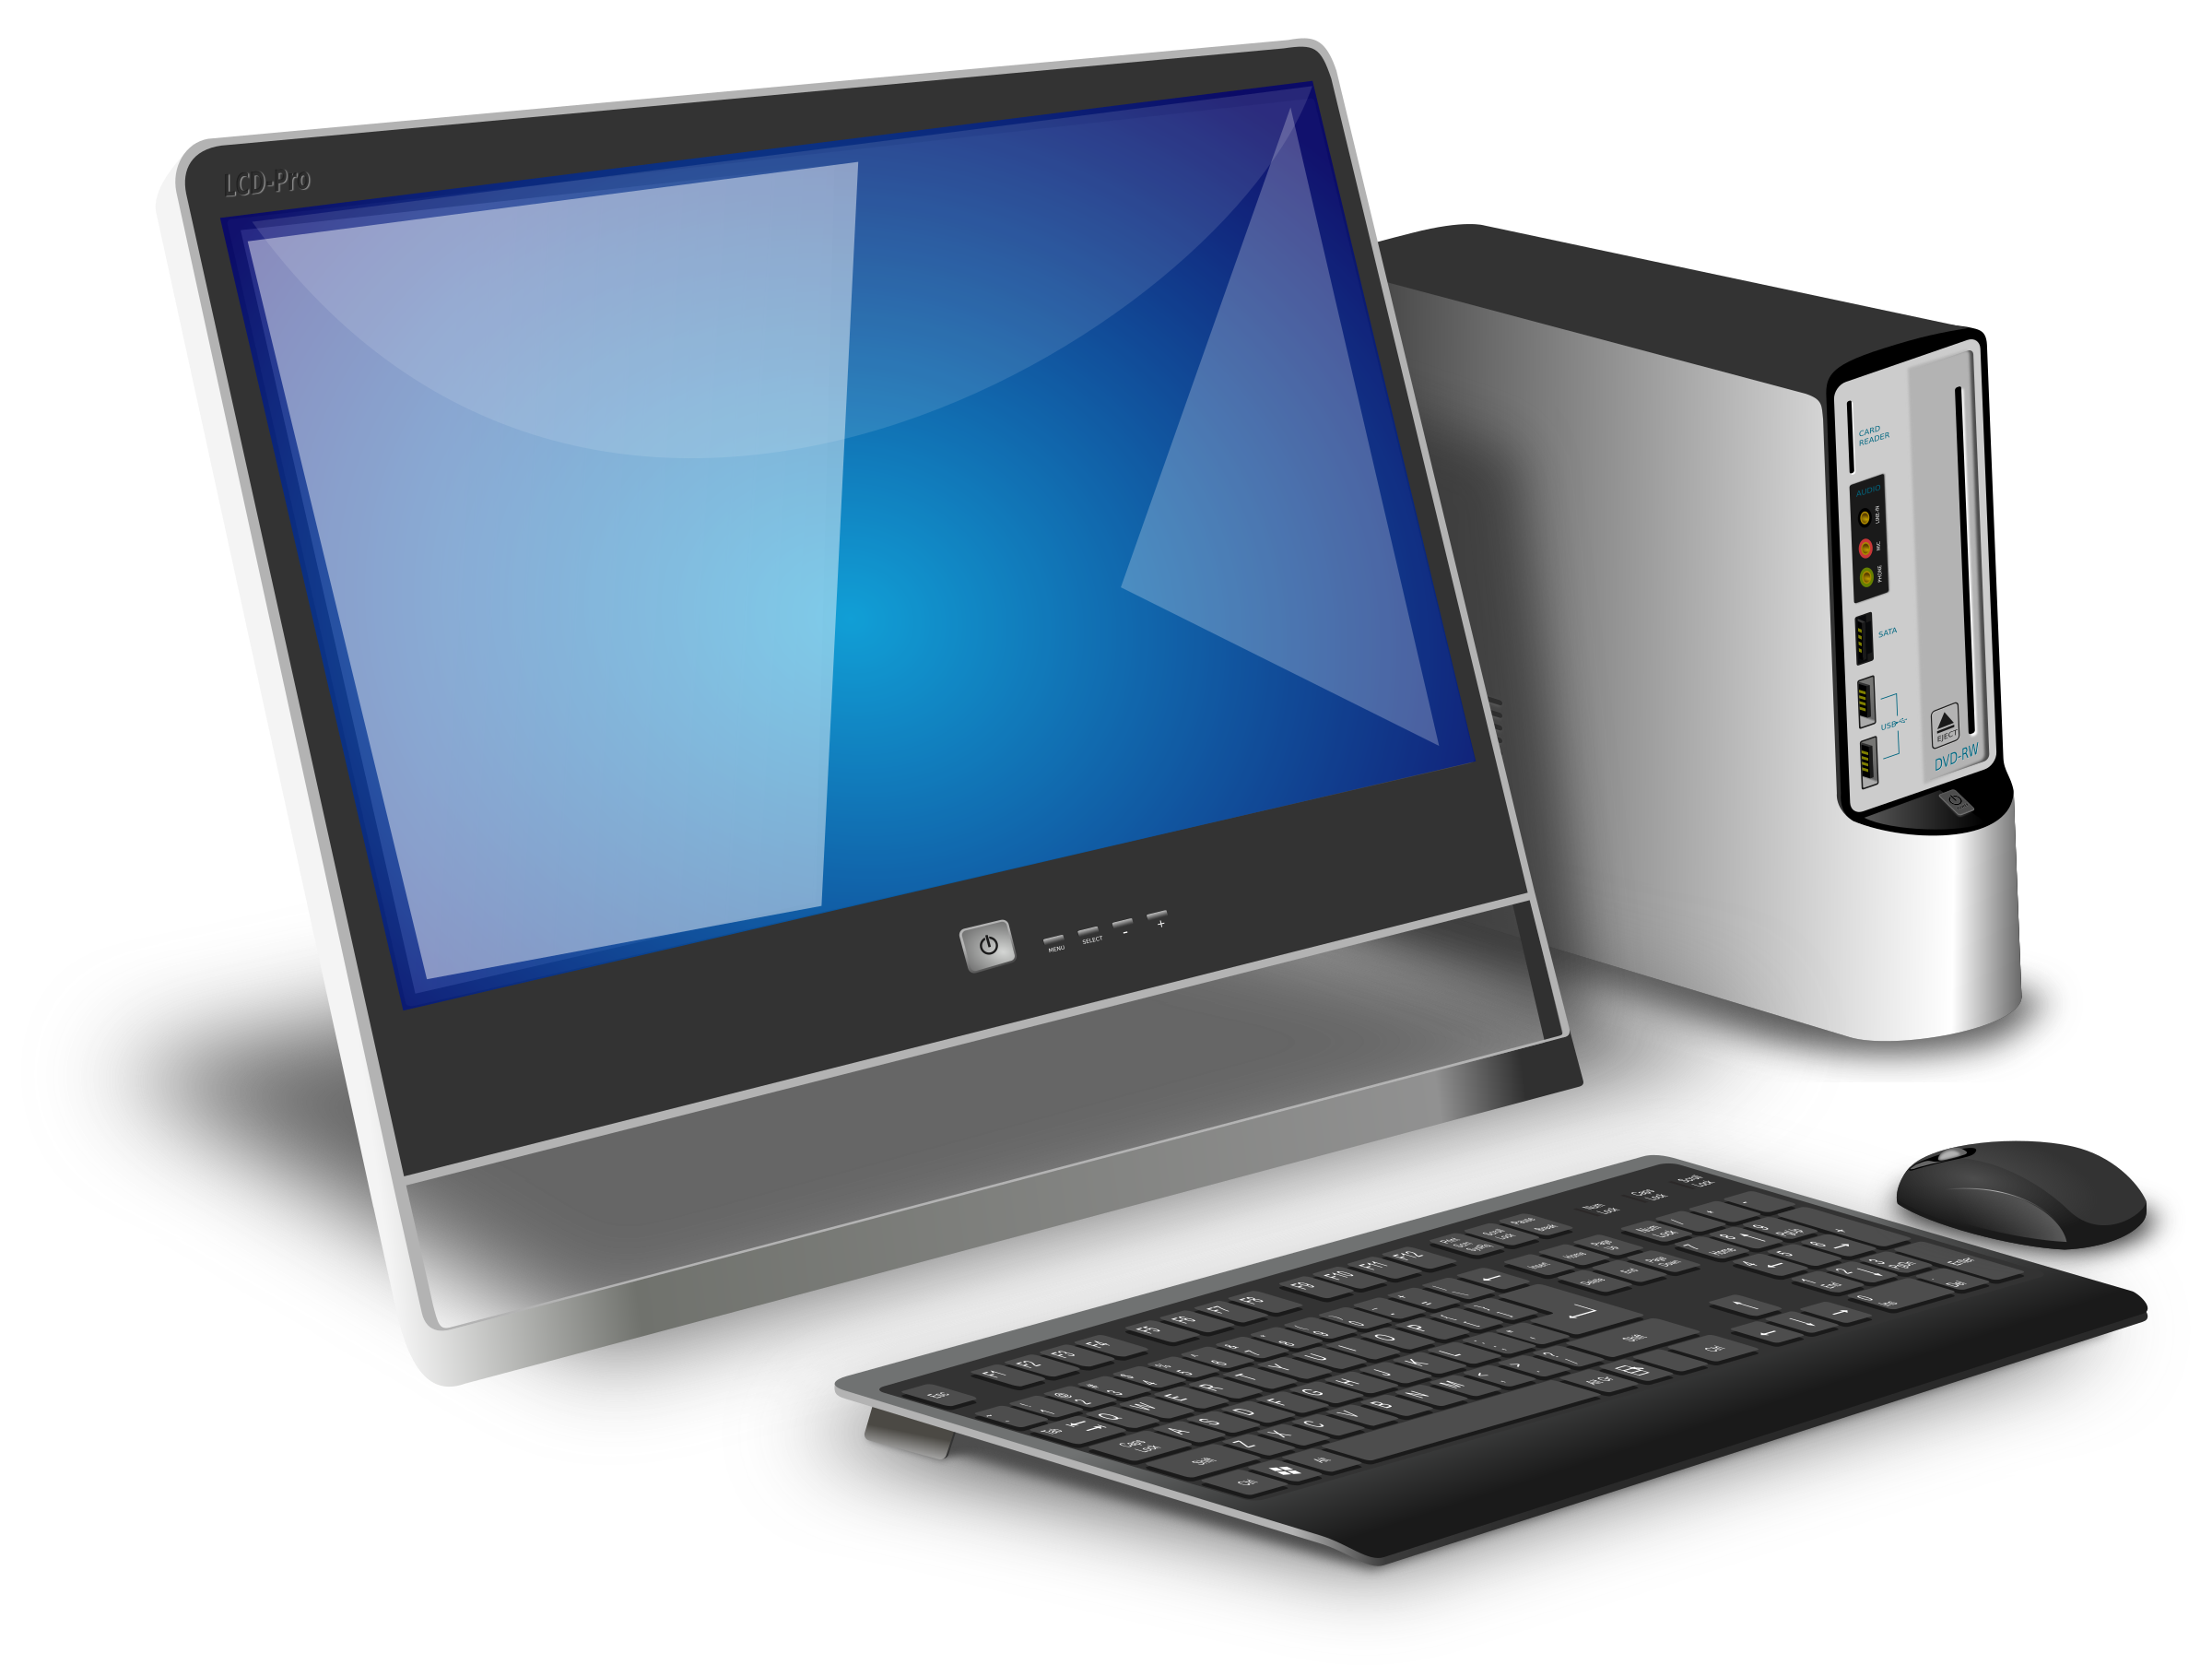 Desktop pc high quality. Computer images png